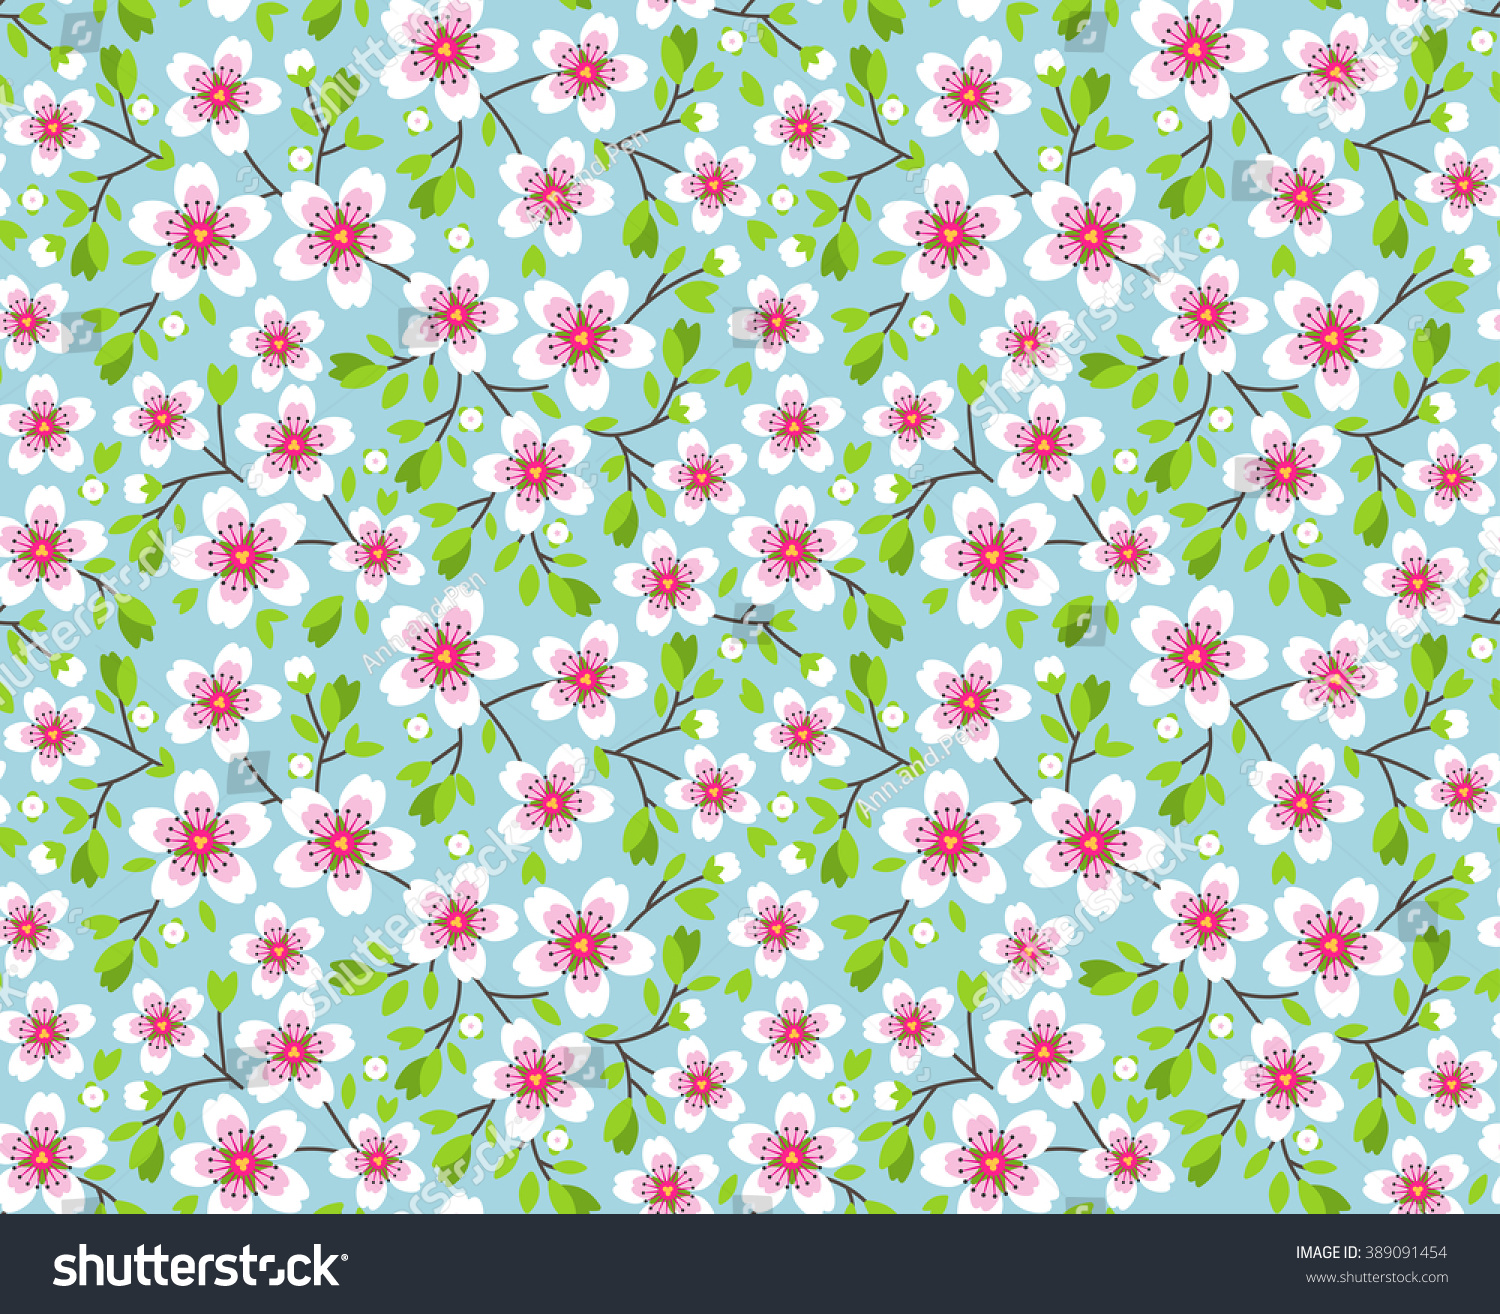 Cute spring flower - Cute Pattern In Small Flower Pink Sakura Flowers Blossoming Japanese Cherry Symbol Of